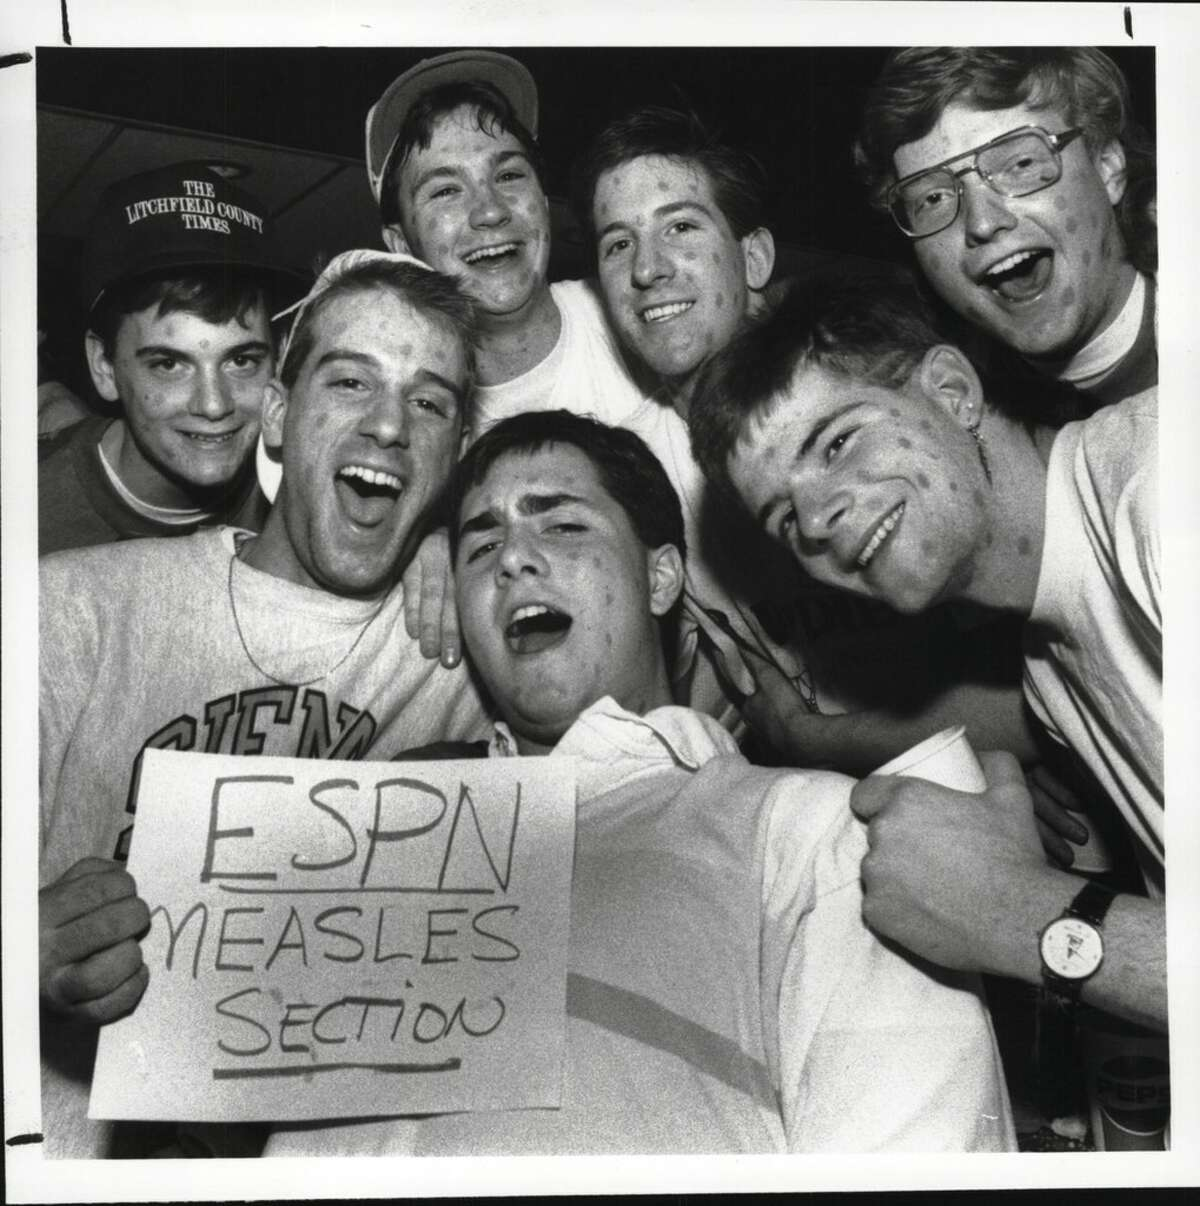 Siena measles rooting section students watched from the campus center as their team beat Boston University in an empty arena in Hartford, Conn. in the North Atlantic Conference title game on March 11, 1989. (Times Union archive)